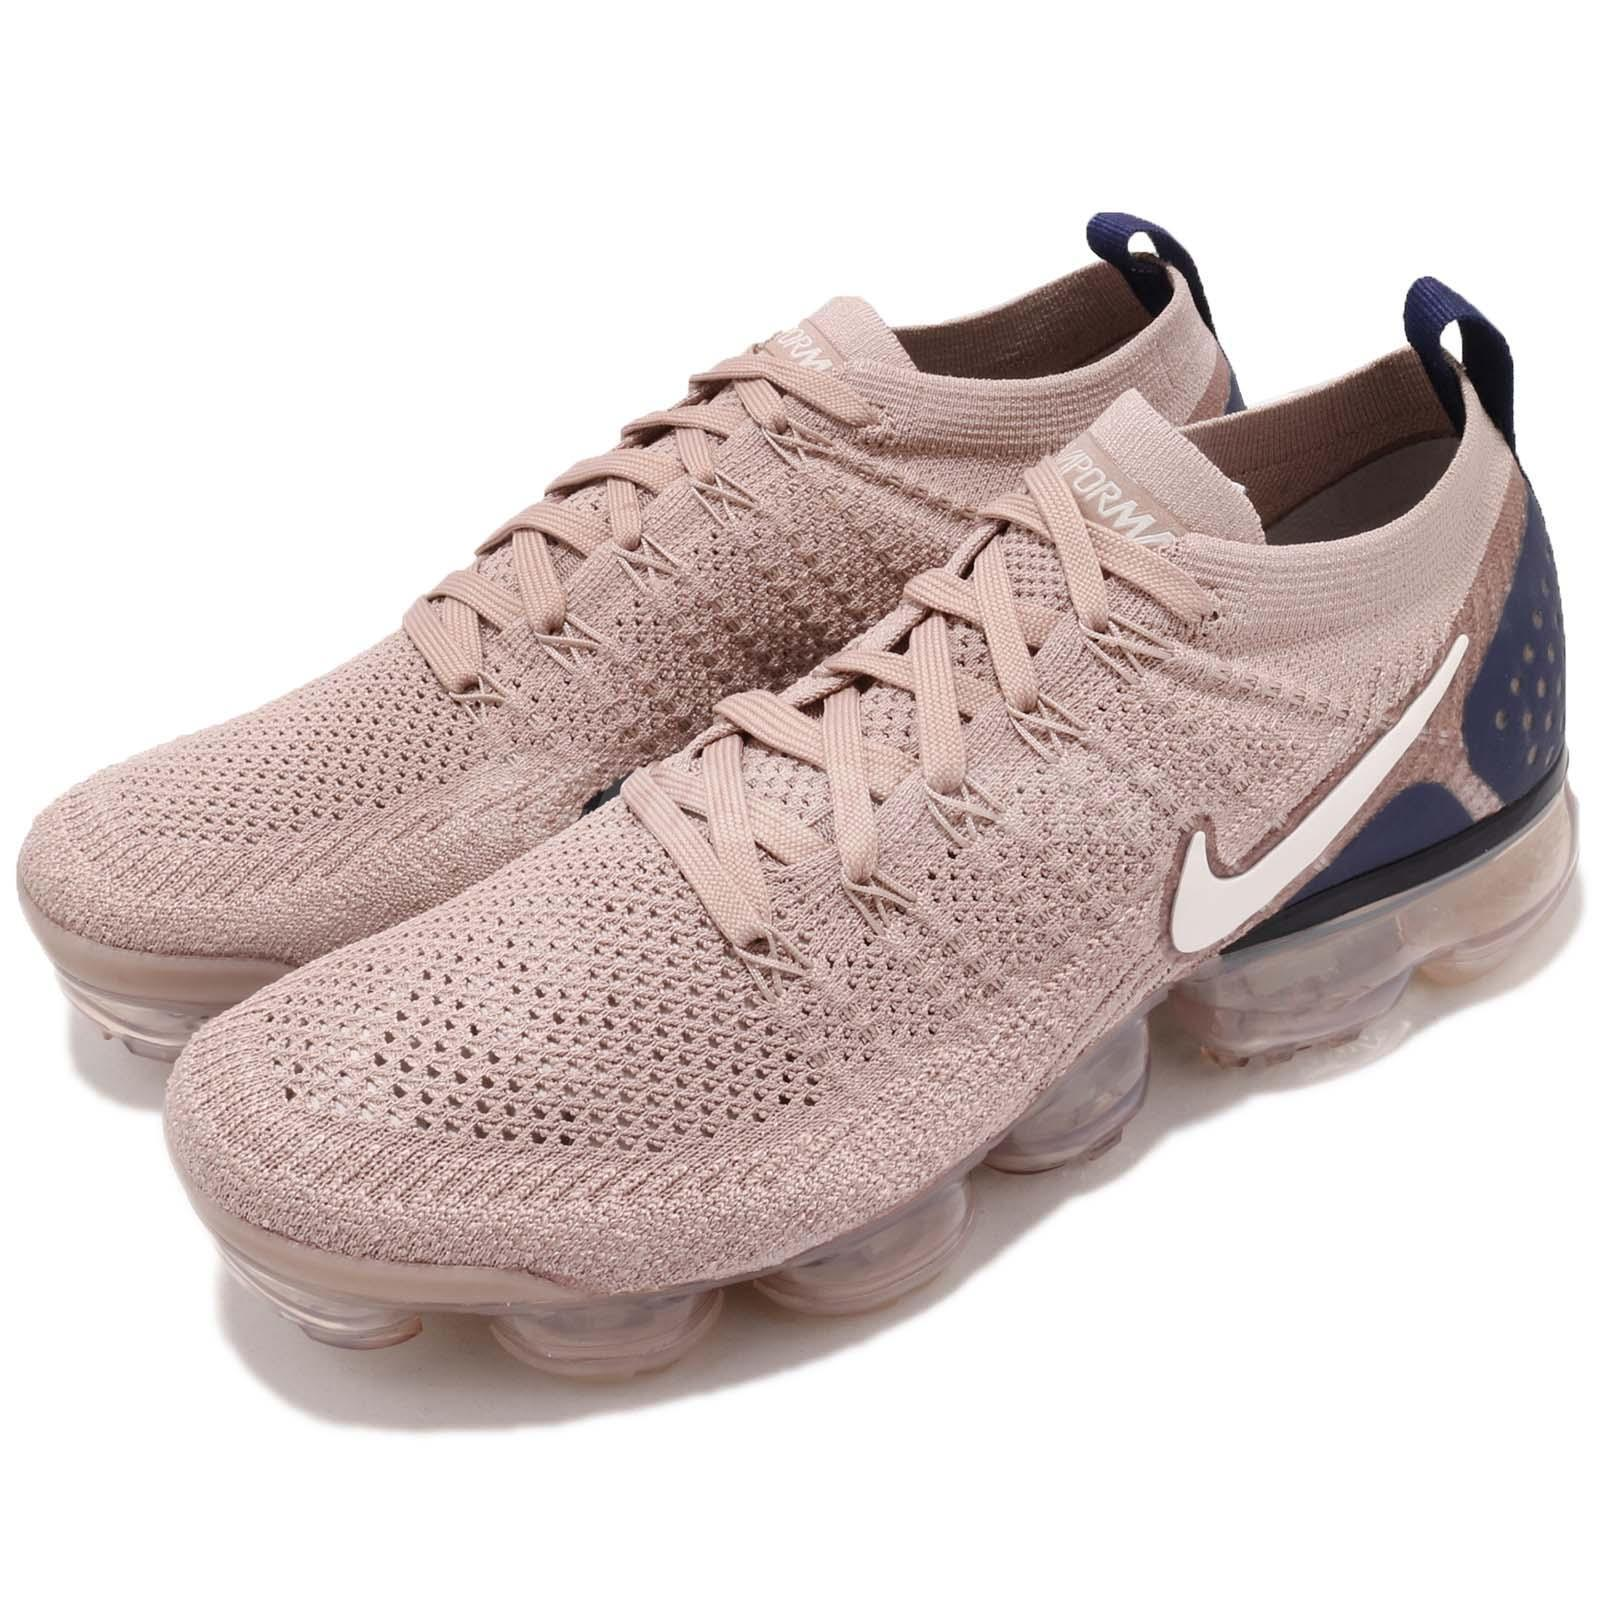 Nike Air Vapormax  Flyknit 2 2.0 Max Difused Taupe Mens Running shoes 942842-201  big sale